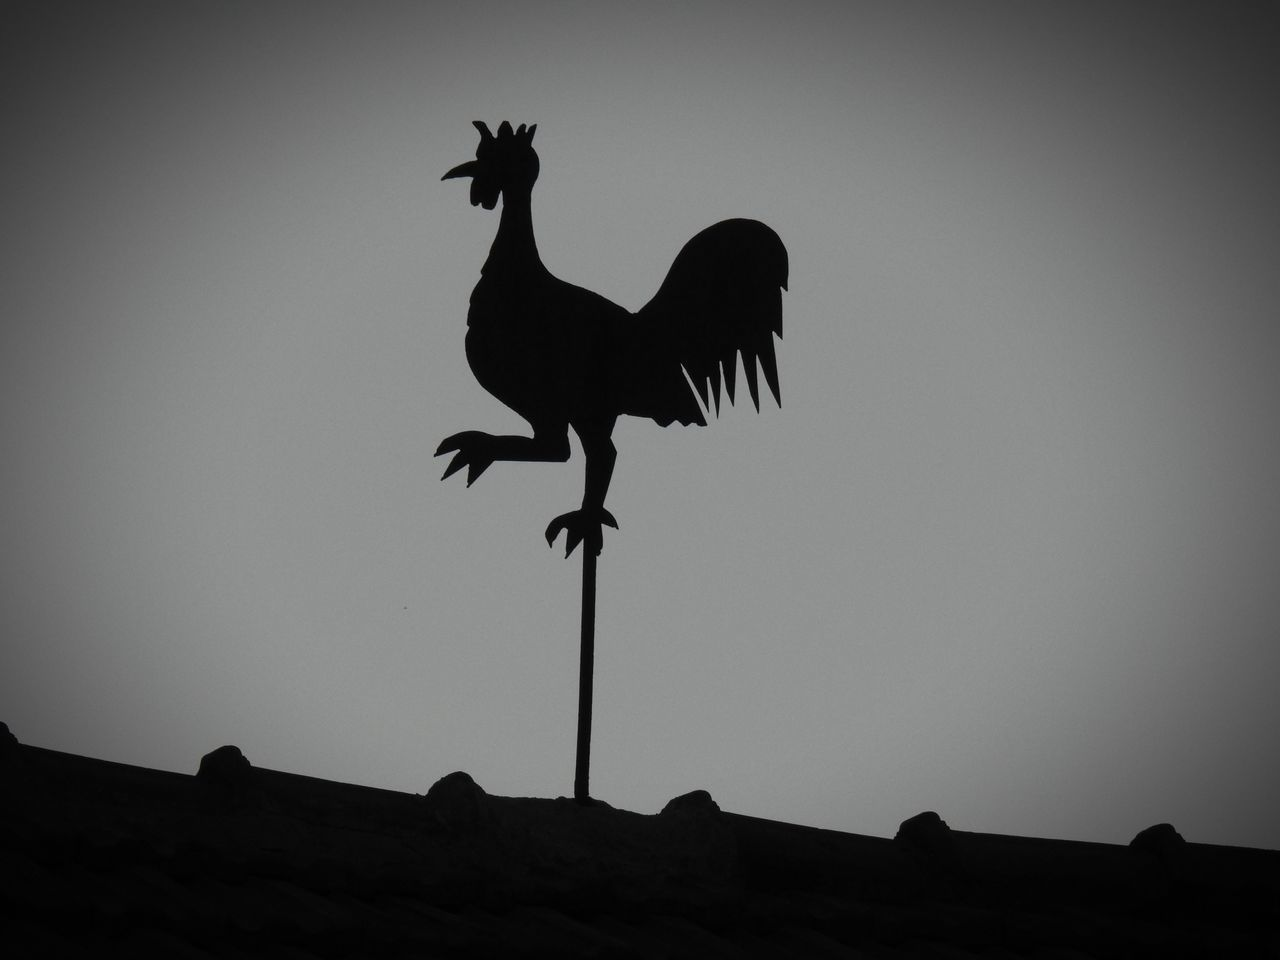 Weathercock Weathercock Weathervane Weather Vane Bird Animal Themes Clear Sky Rooster Silhouette Silhouette Silhouettes Silhouette_collection Silhoutte Photography Blackandwhite Black And White Black & White Blackandwhite Photography Black And White Photography Black&white Wind